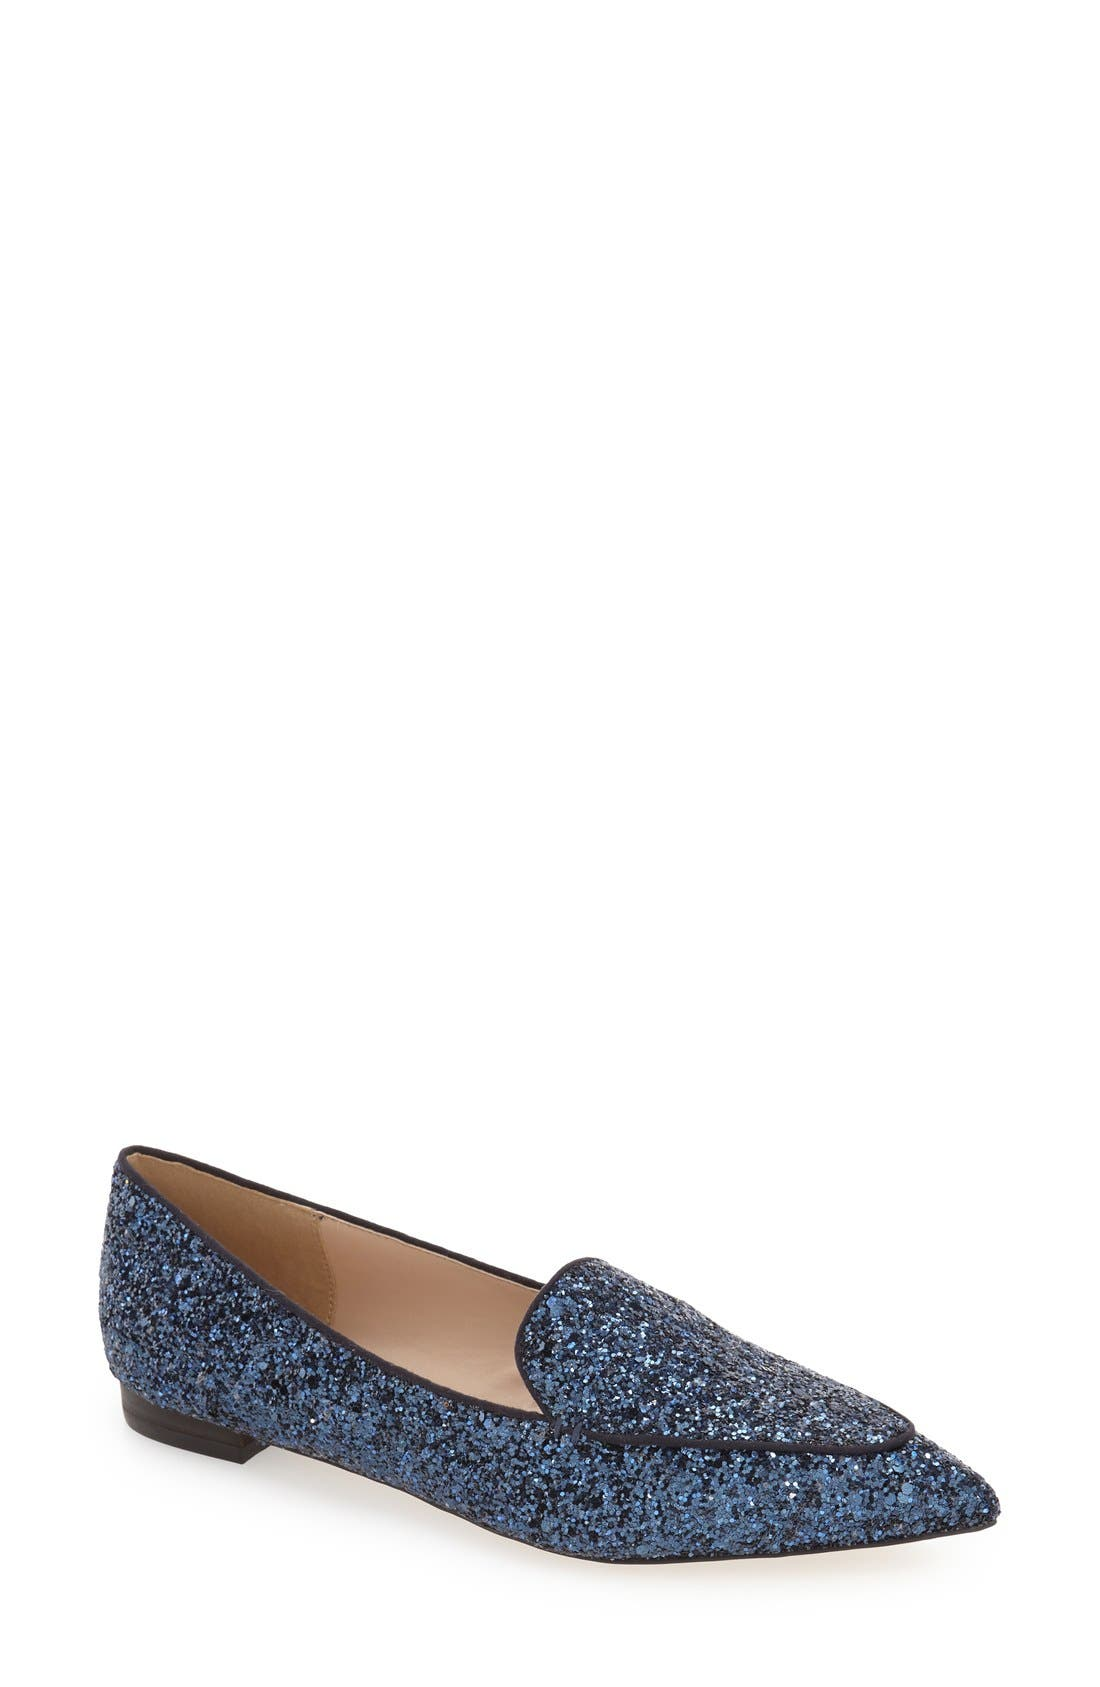 'Cammila' Pointy Toe Loafer,                             Main thumbnail 10, color,